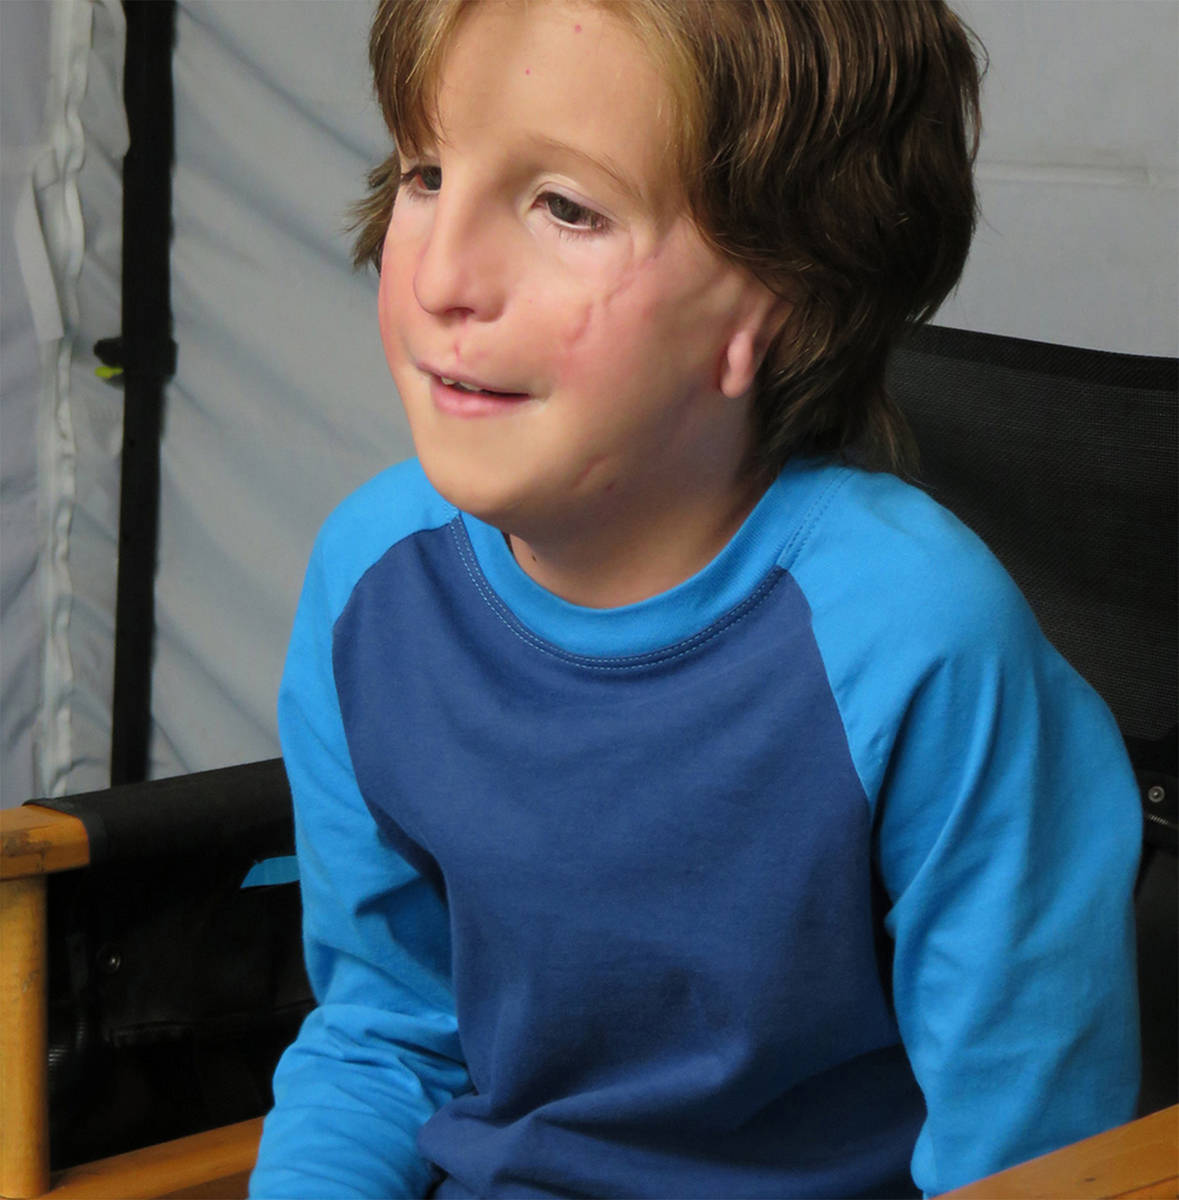 Jacob Tremblay in makeup for the movie Wonder. Courtesy Lions Gate Entertainment